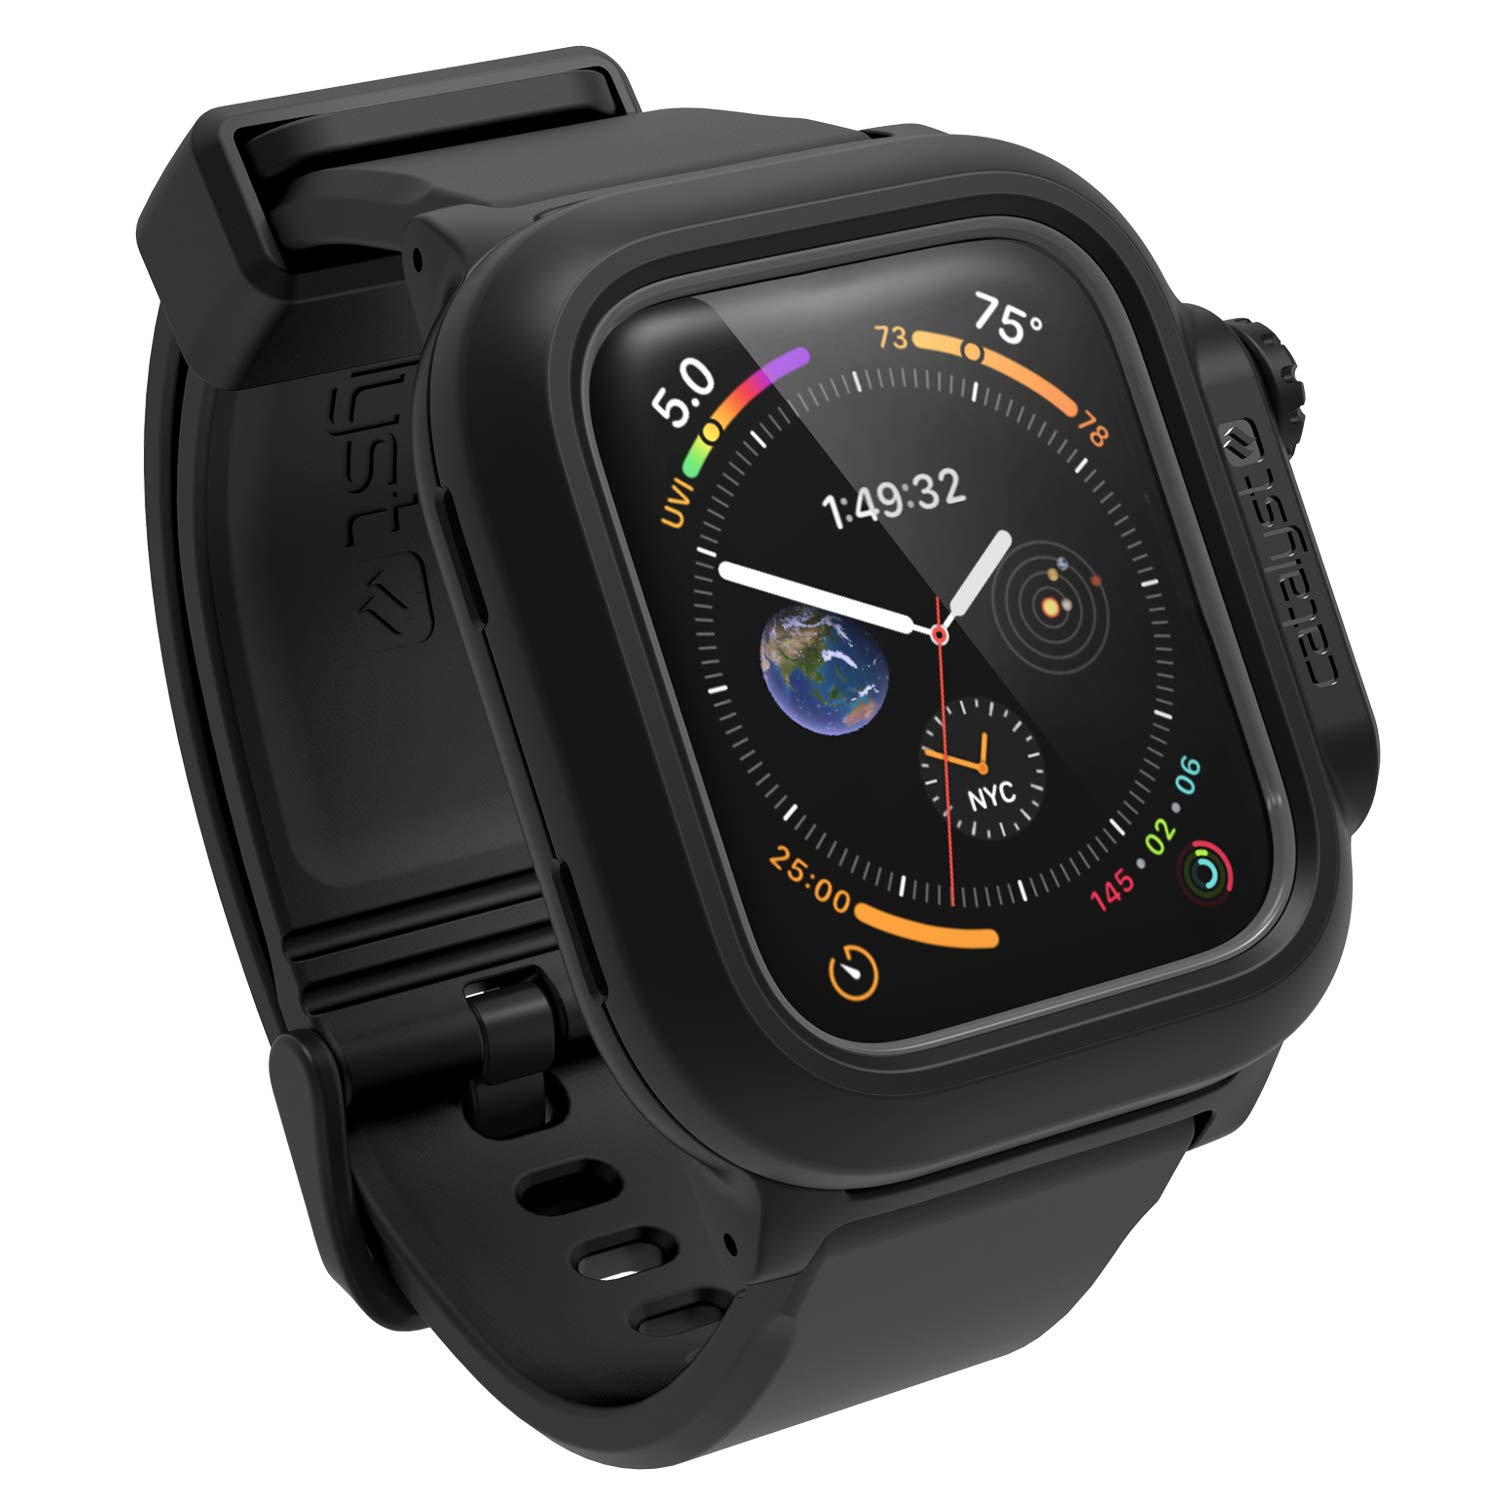 Catalyst Waterproof for Apple Watch Case Series 4 44mm with Premium Soft Silicone Apple Watch Band, Shock Proof Impact Resistant [Rugged iWatch Protective case] 330ft 100% Waterproof- Stealth Black by Catalyst (Image #1)